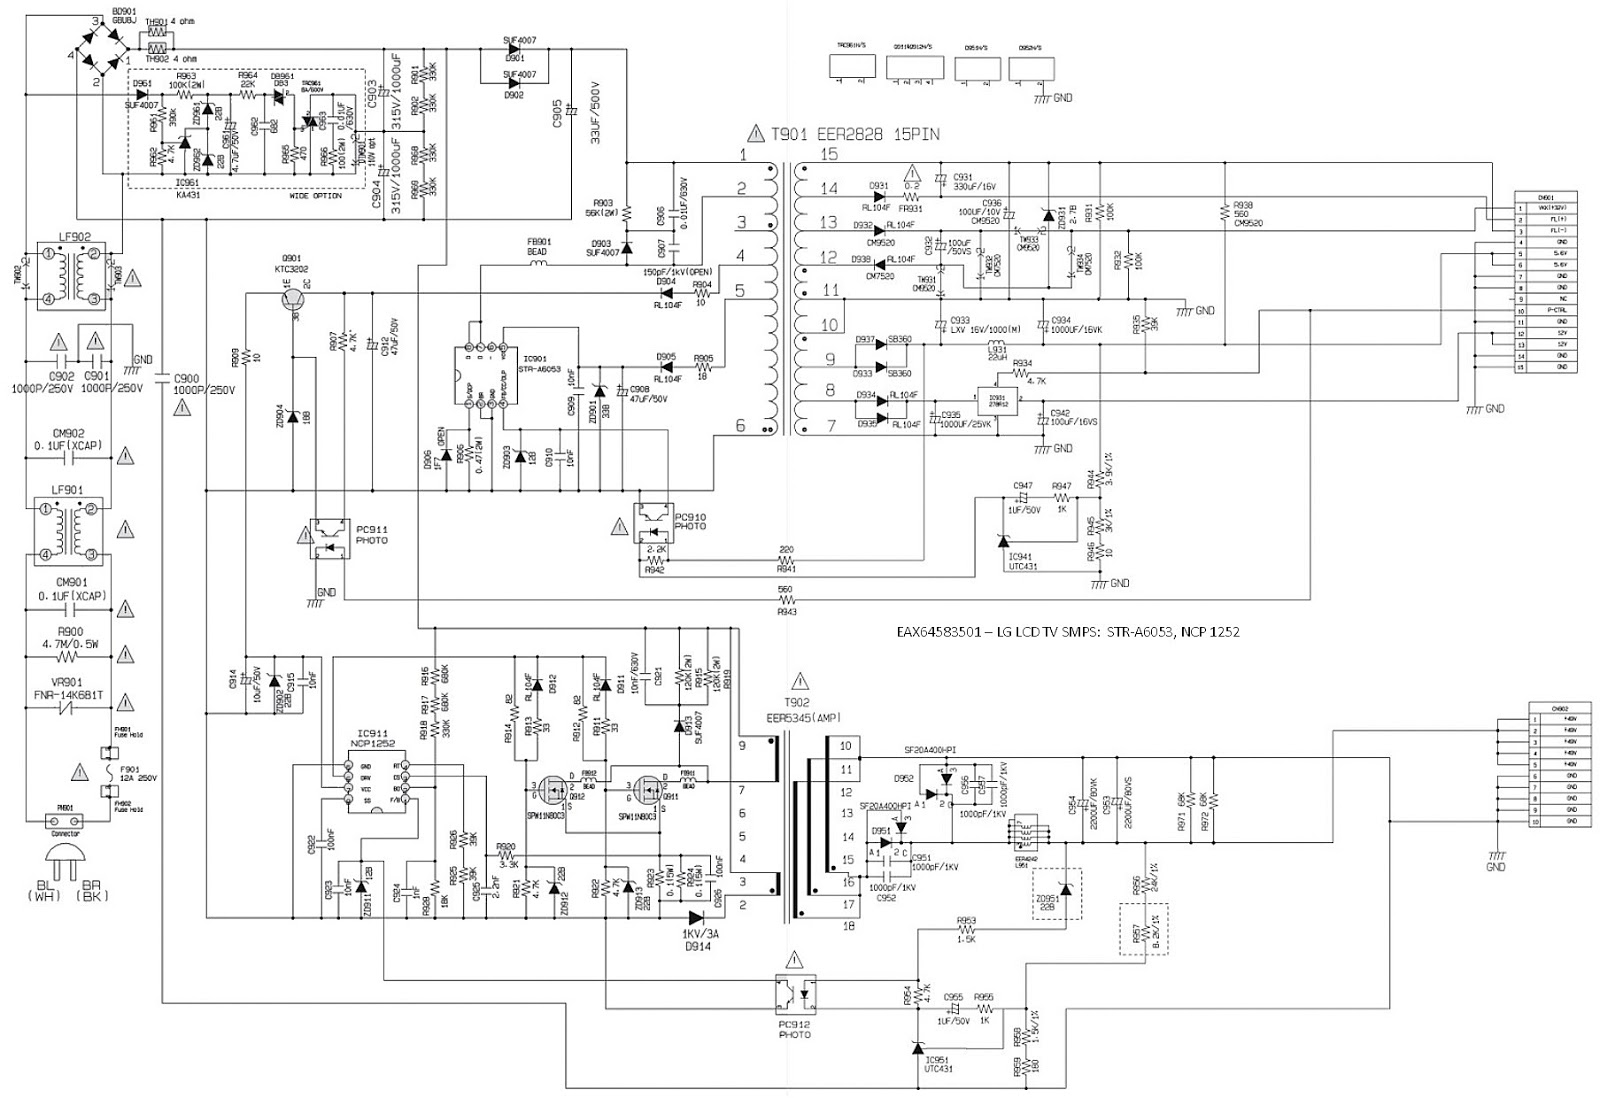 eax64583501 lg lcd tv smps schematic schematic diagrams lg led tv smps circuit diagram lg led [ 1600 x 1098 Pixel ]